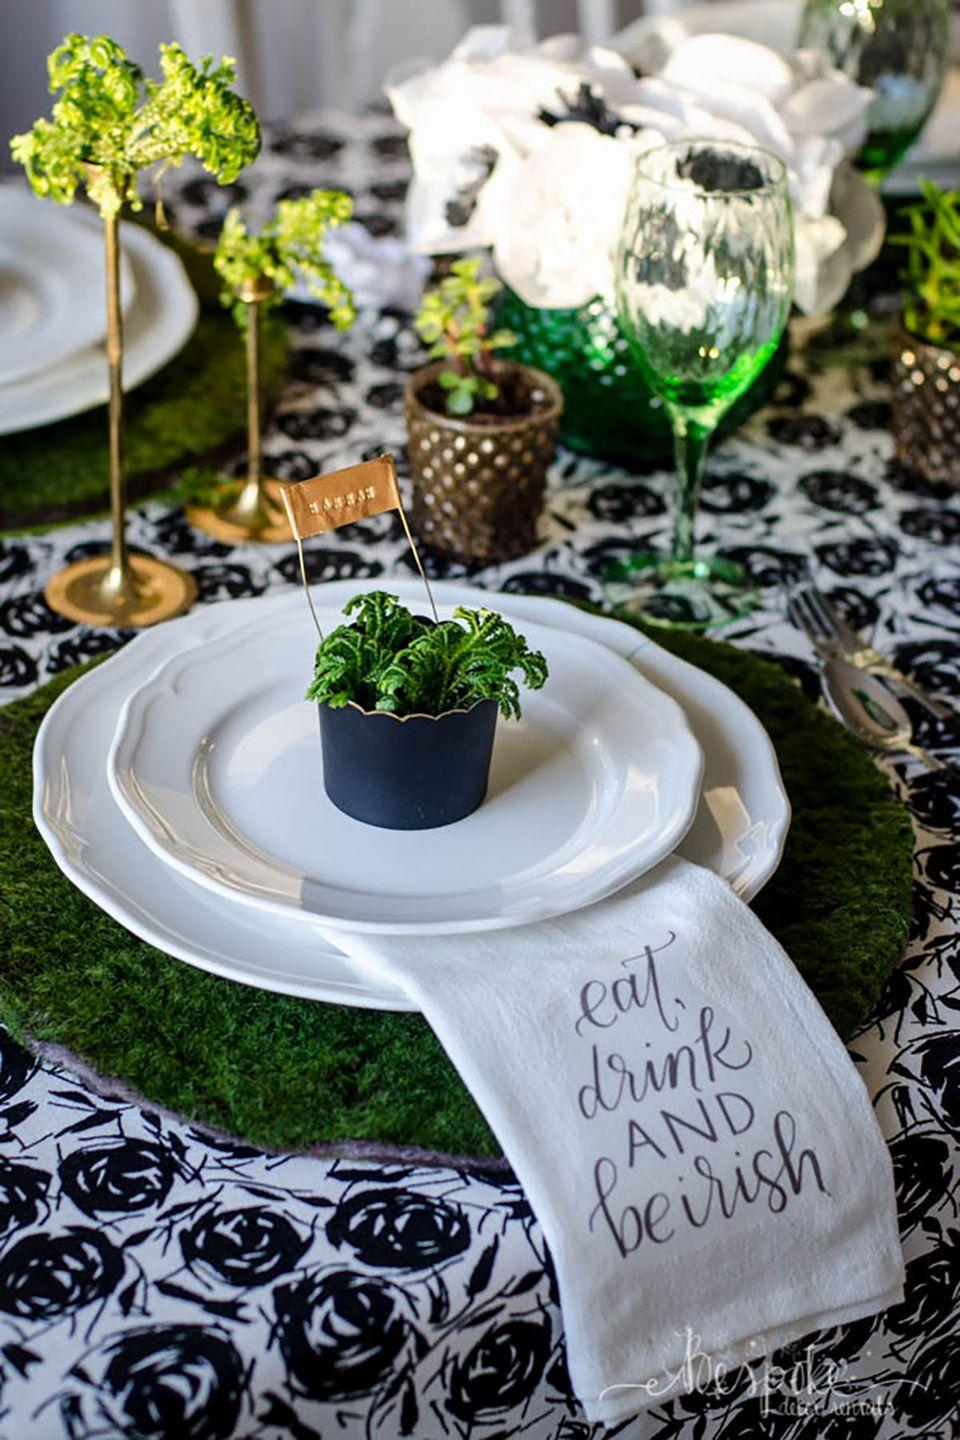 """<p>These gorgeous moss placemats will add so much texture to your St. Patrick's Day table.</p><p><strong>Get the tutorial at <a href=""""http://www.bespokedecor.ca/diy-moss-placemats-saint-patricks-day-blogger-party/"""" rel=""""nofollow noopener"""" target=""""_blank"""" data-ylk=""""slk:Bespoke Decor"""" class=""""link rapid-noclick-resp"""">Bespoke Decor</a>. </strong></p><p><a class=""""link rapid-noclick-resp"""" href=""""https://www.amazon.com/Super-Moss-759834224068-B01LYOBGCP-Fresh/dp/B01LYOBGCP/ref=sr_1_1_sspa?tag=syn-yahoo-20&ascsubtag=%5Bartid%7C10050.g.4036%5Bsrc%7Cyahoo-us"""" rel=""""nofollow noopener"""" target=""""_blank"""" data-ylk=""""slk:SHOP MOSS"""">SHOP MOSS</a></p>"""